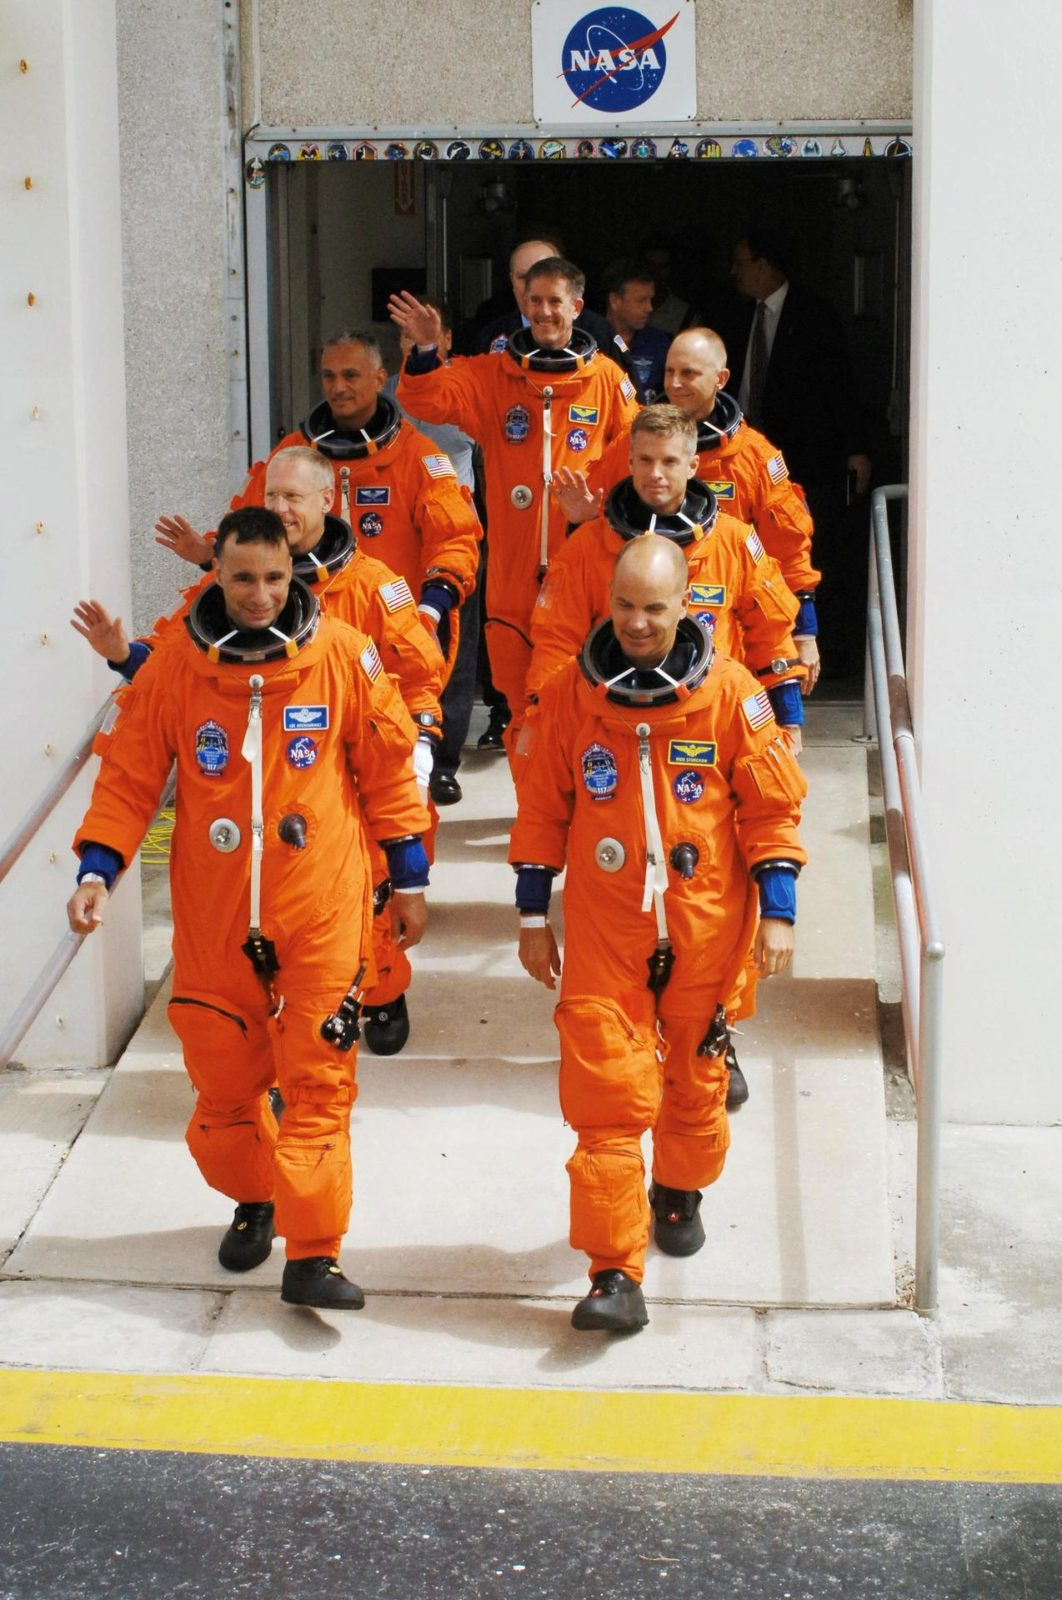 """STS117-S-006 (8 June 2007) --- After suiting up, the STS-117 crewmembers exit the Operations and Checkout Building to board the Astrovan, which will take them to launch pad 39A at Kennedy Space Center. On the right (front to back) are astronauts Rick Sturckow, commander; Steven Swanson, Clayton Anderson and Jim Reilly (center back), all mission specialists. On the left (front to back) are astronauts Lee Archambault, pilot; Patrick Forrester and John """"Danny"""" Olivas, both mission specialists. Anderson will join Expedition 15 in progress to serve as a flight engineer aboard the International Space Station. Atlantis will link up with the International Space Station on Sunday, June 10, to begin a joint mission that will increase the complex's power generation capability. Using the shuttle and station robotic arms and conducting three scheduled spacewalks, the astronauts will install another set of giant solar array wings on the station and retract another array, preparing it for a future move. STS117-S-006"""